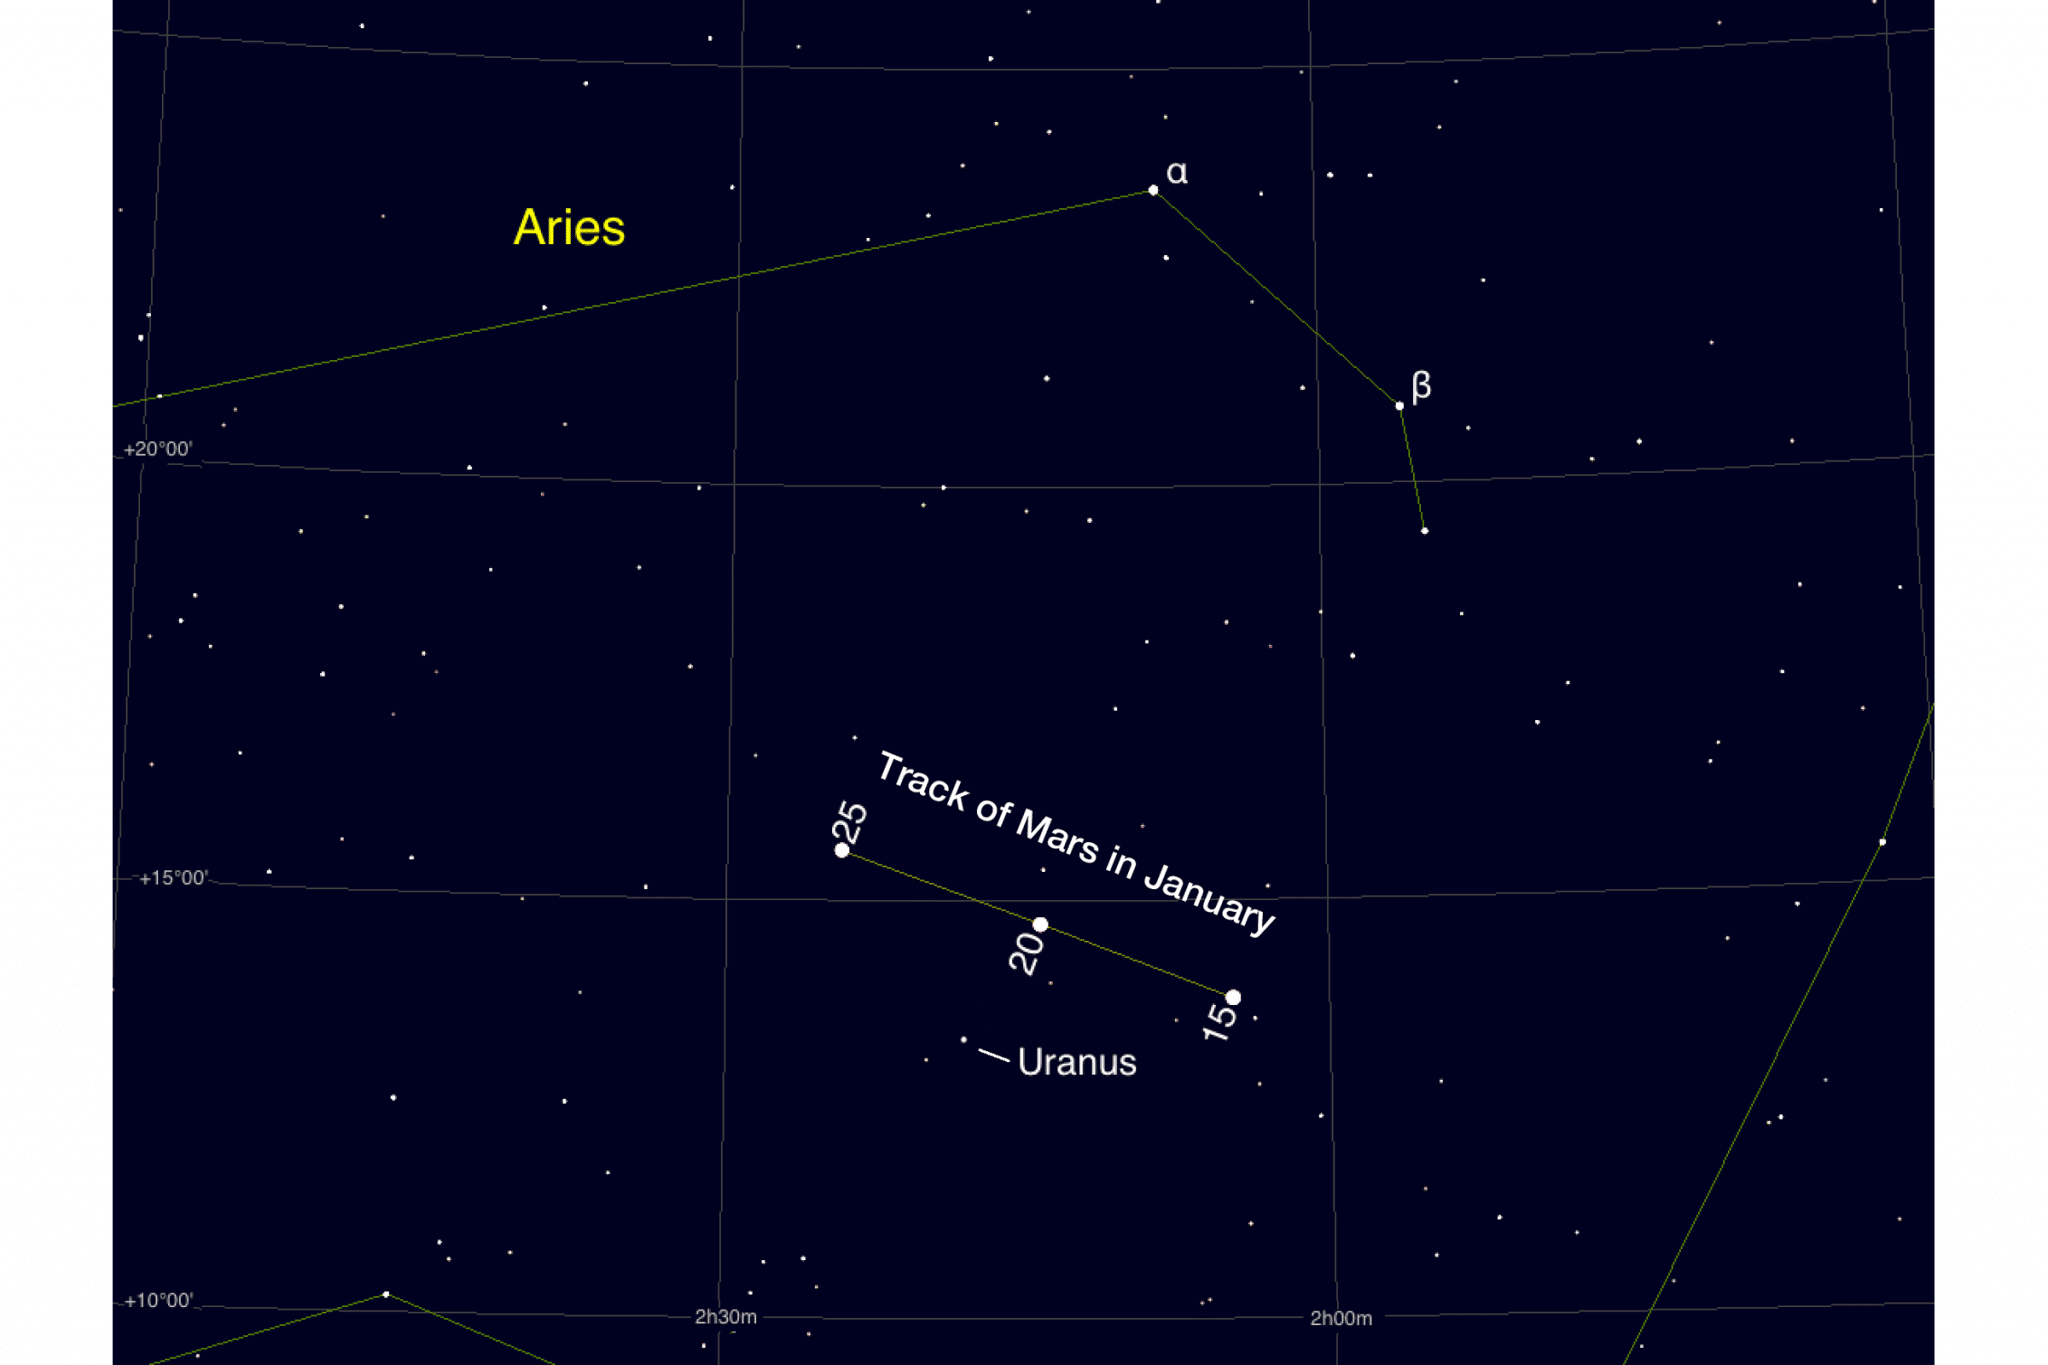 Mars close to Uranus